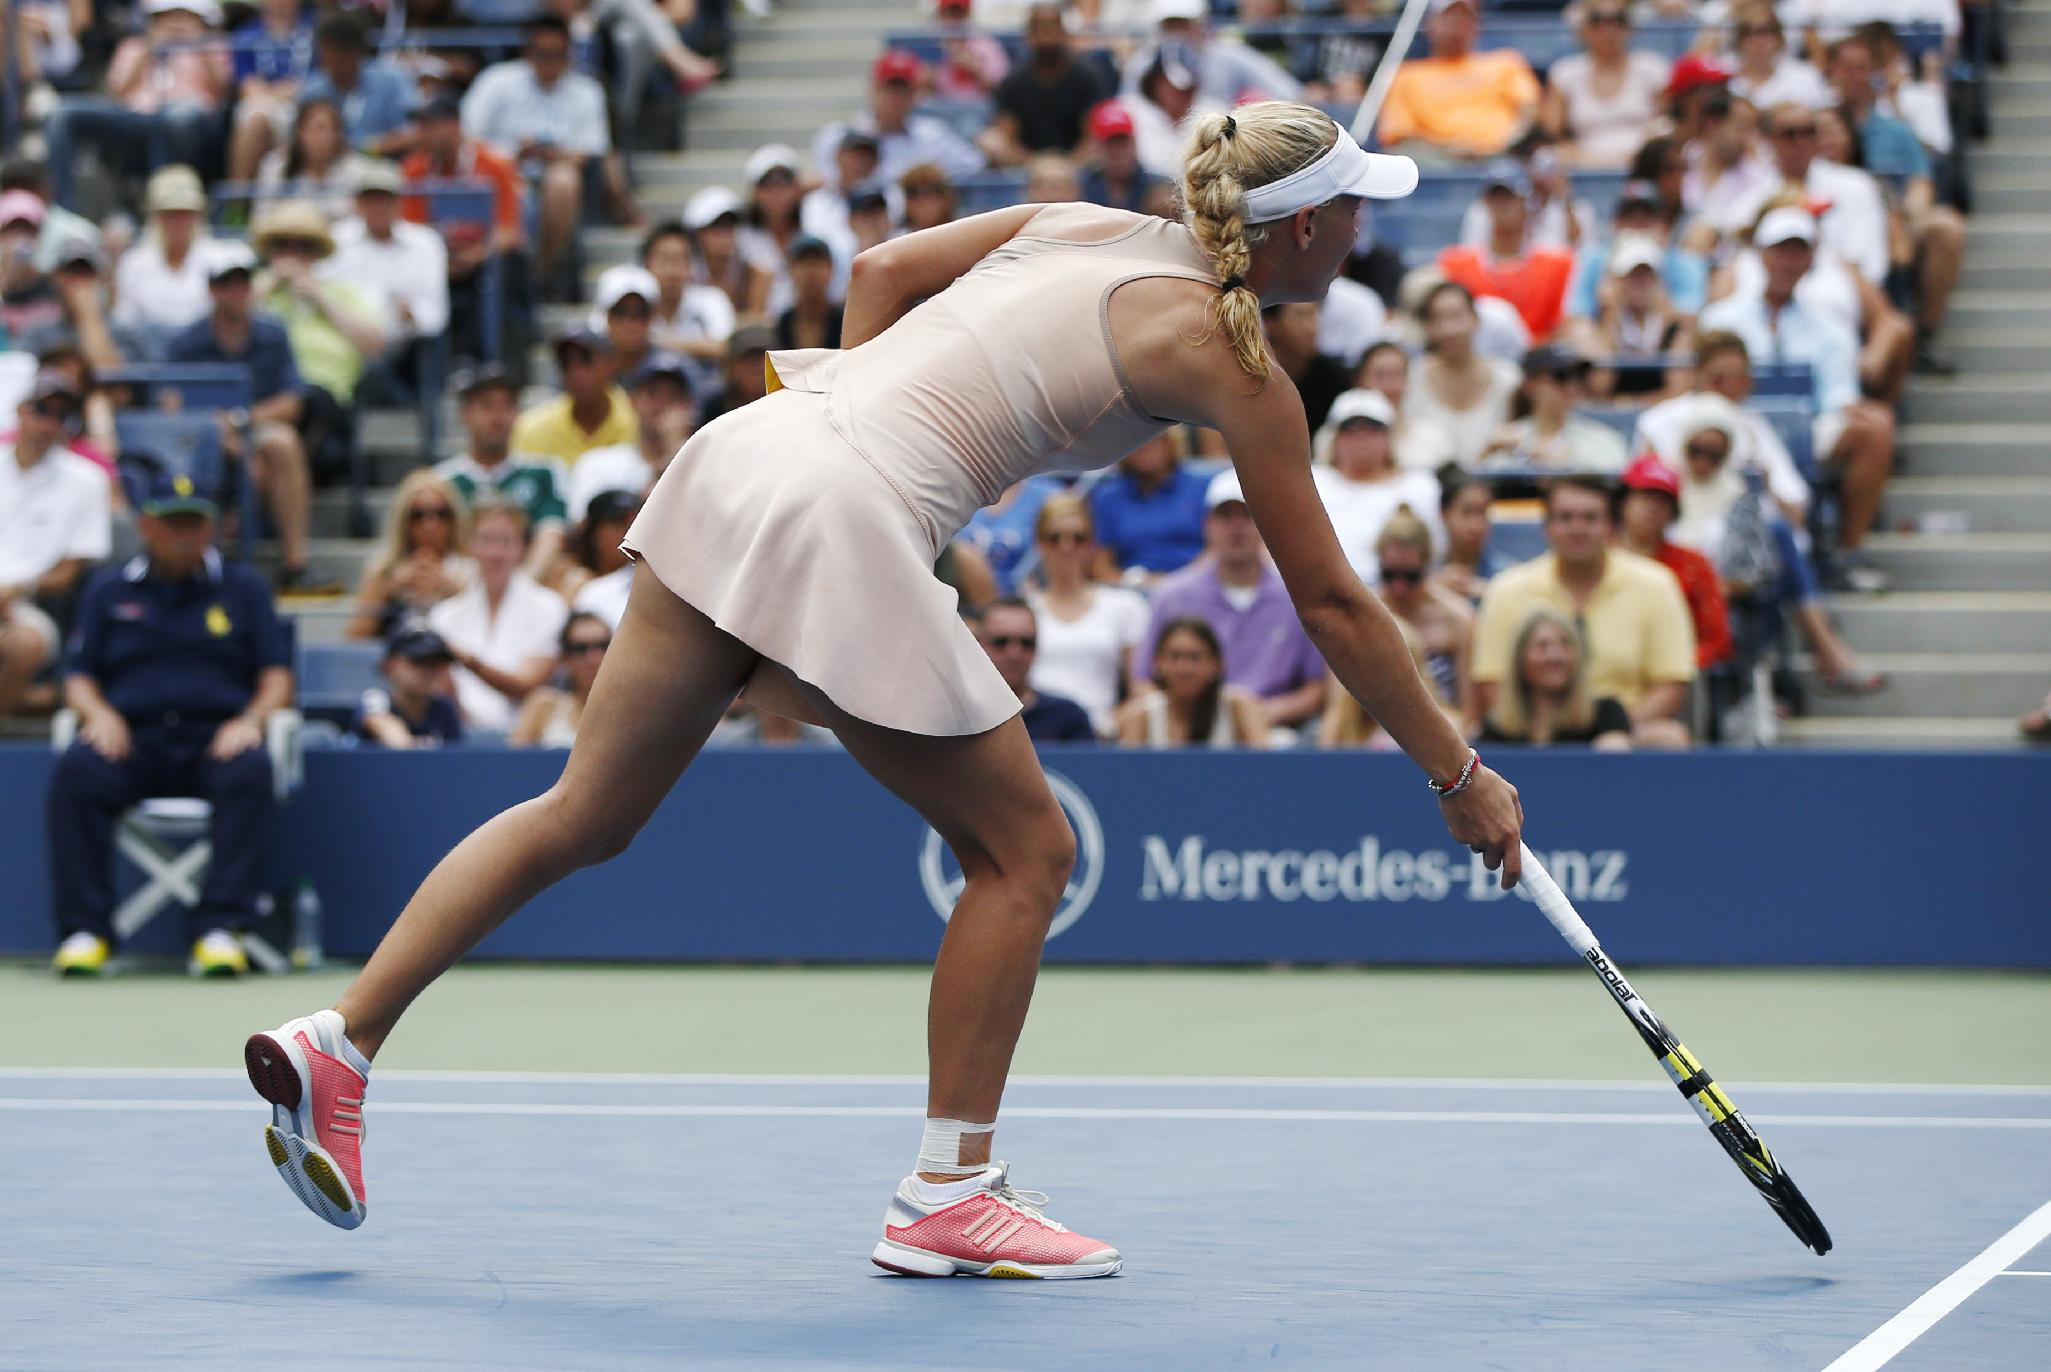 Caroline Wozniacki, of Denmark, points out a spot near the service line during a fourth round match against Maria Sharapova, of Russia, during the 2014 U.S. Open tennis tournament, Sunday, Aug. 31, 2014, in New York